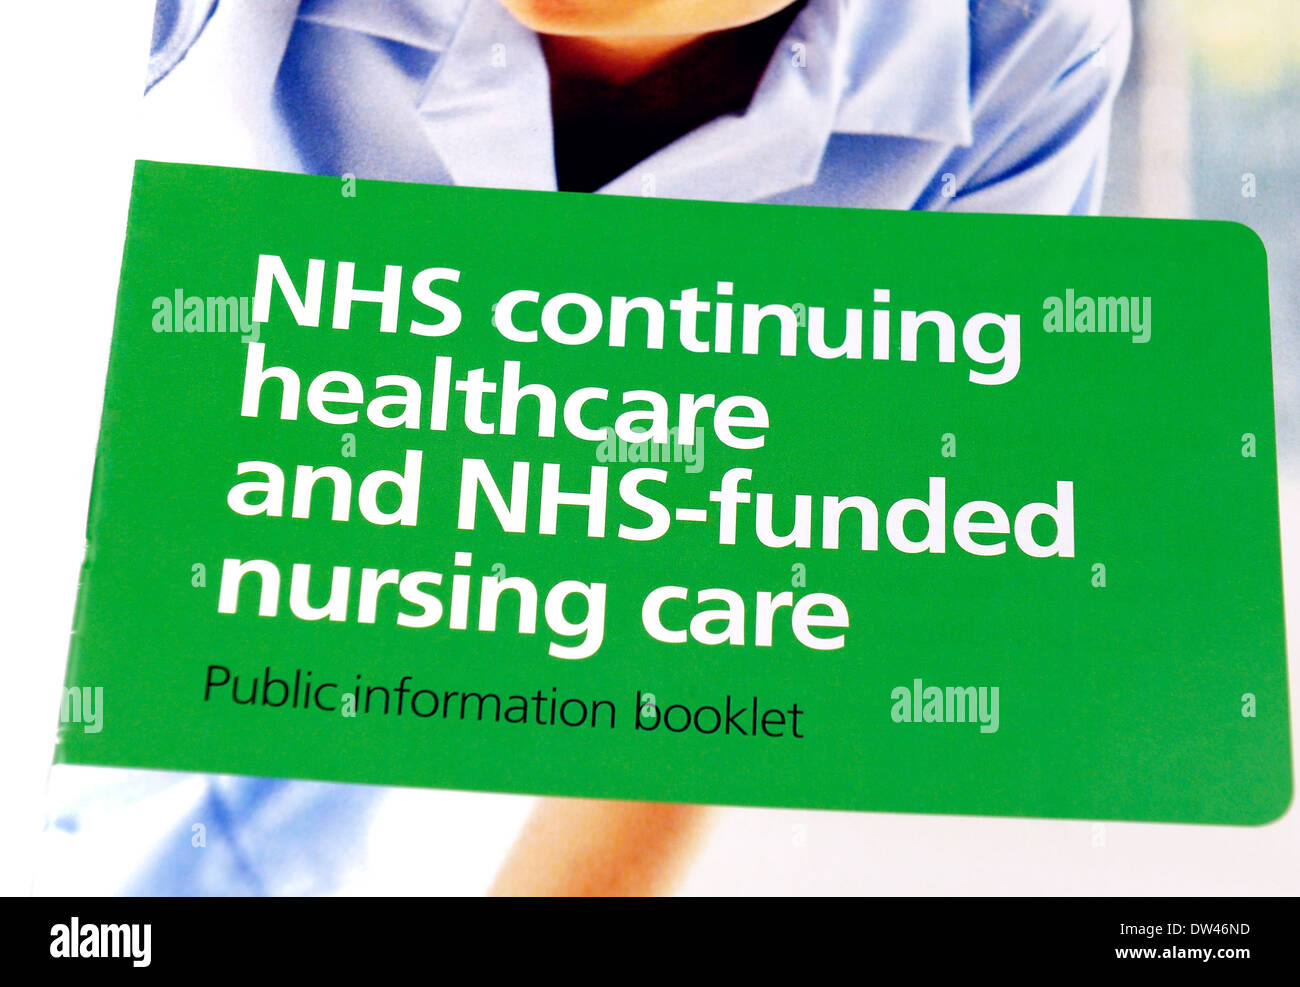 NHS continuing healthcare and NHS funded nursing care public information booklet - Stock Image